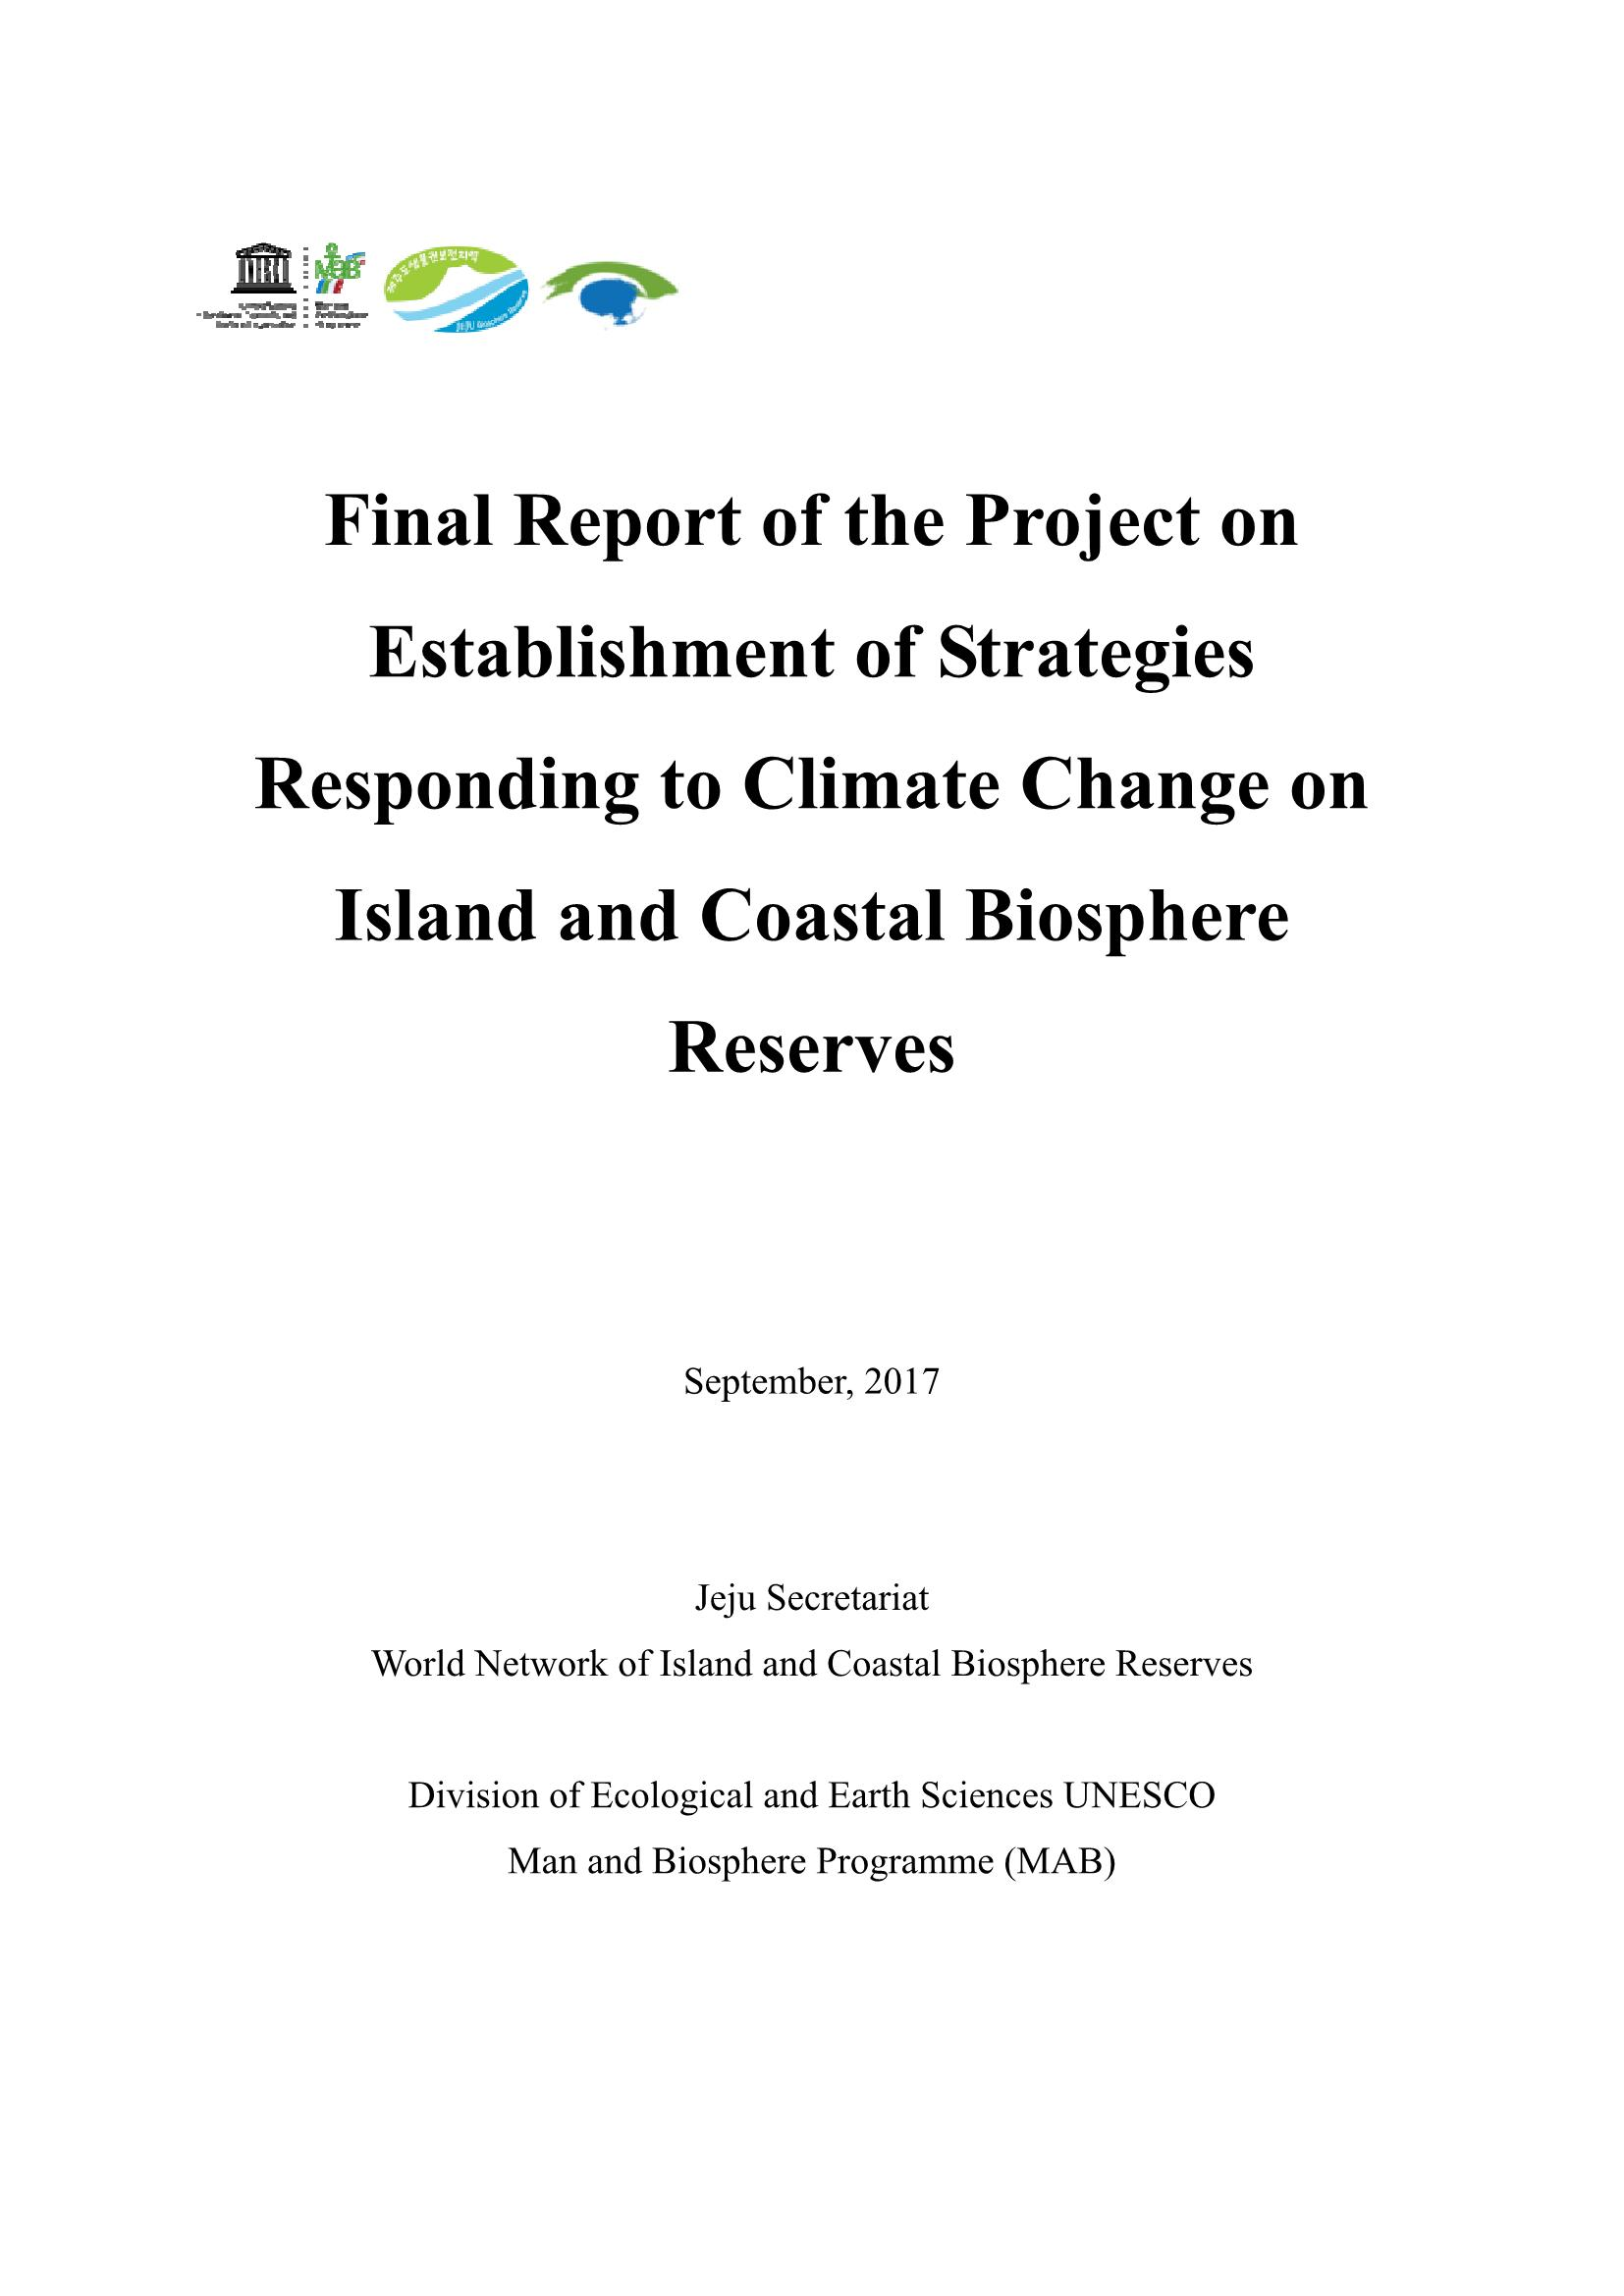 Final Report of Joint Research Project (2nd stage)